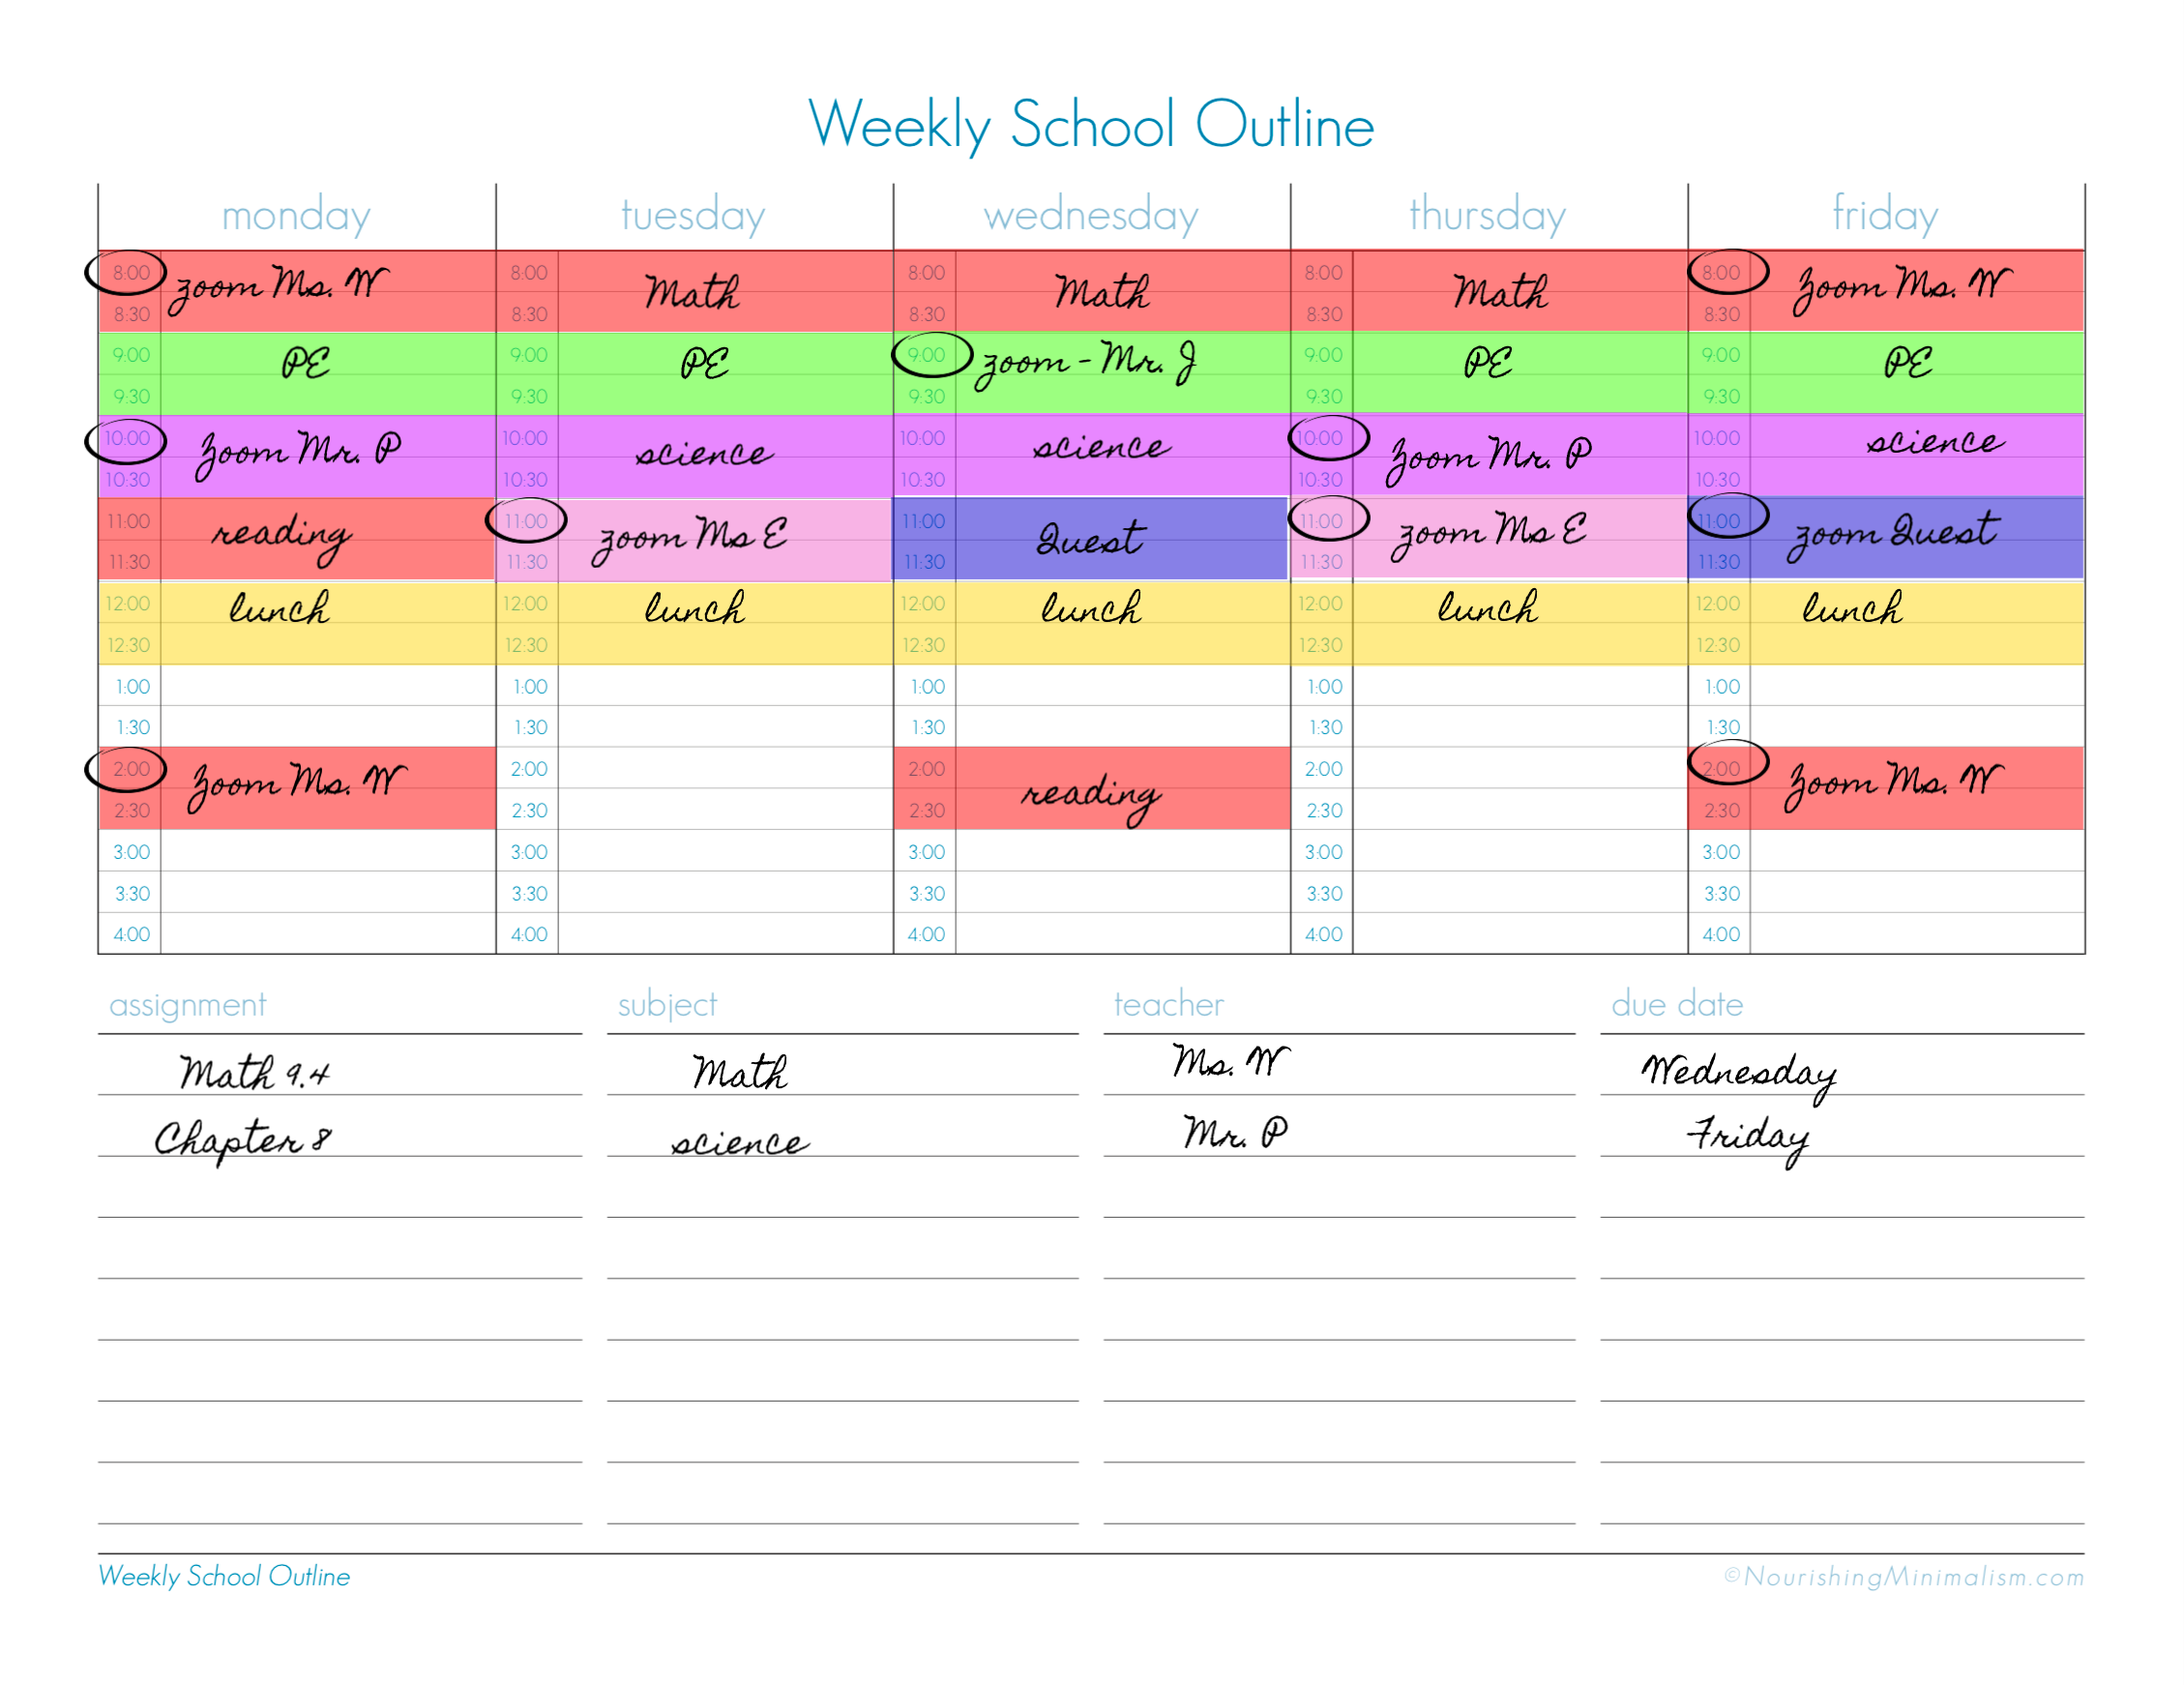 weekly school outline example